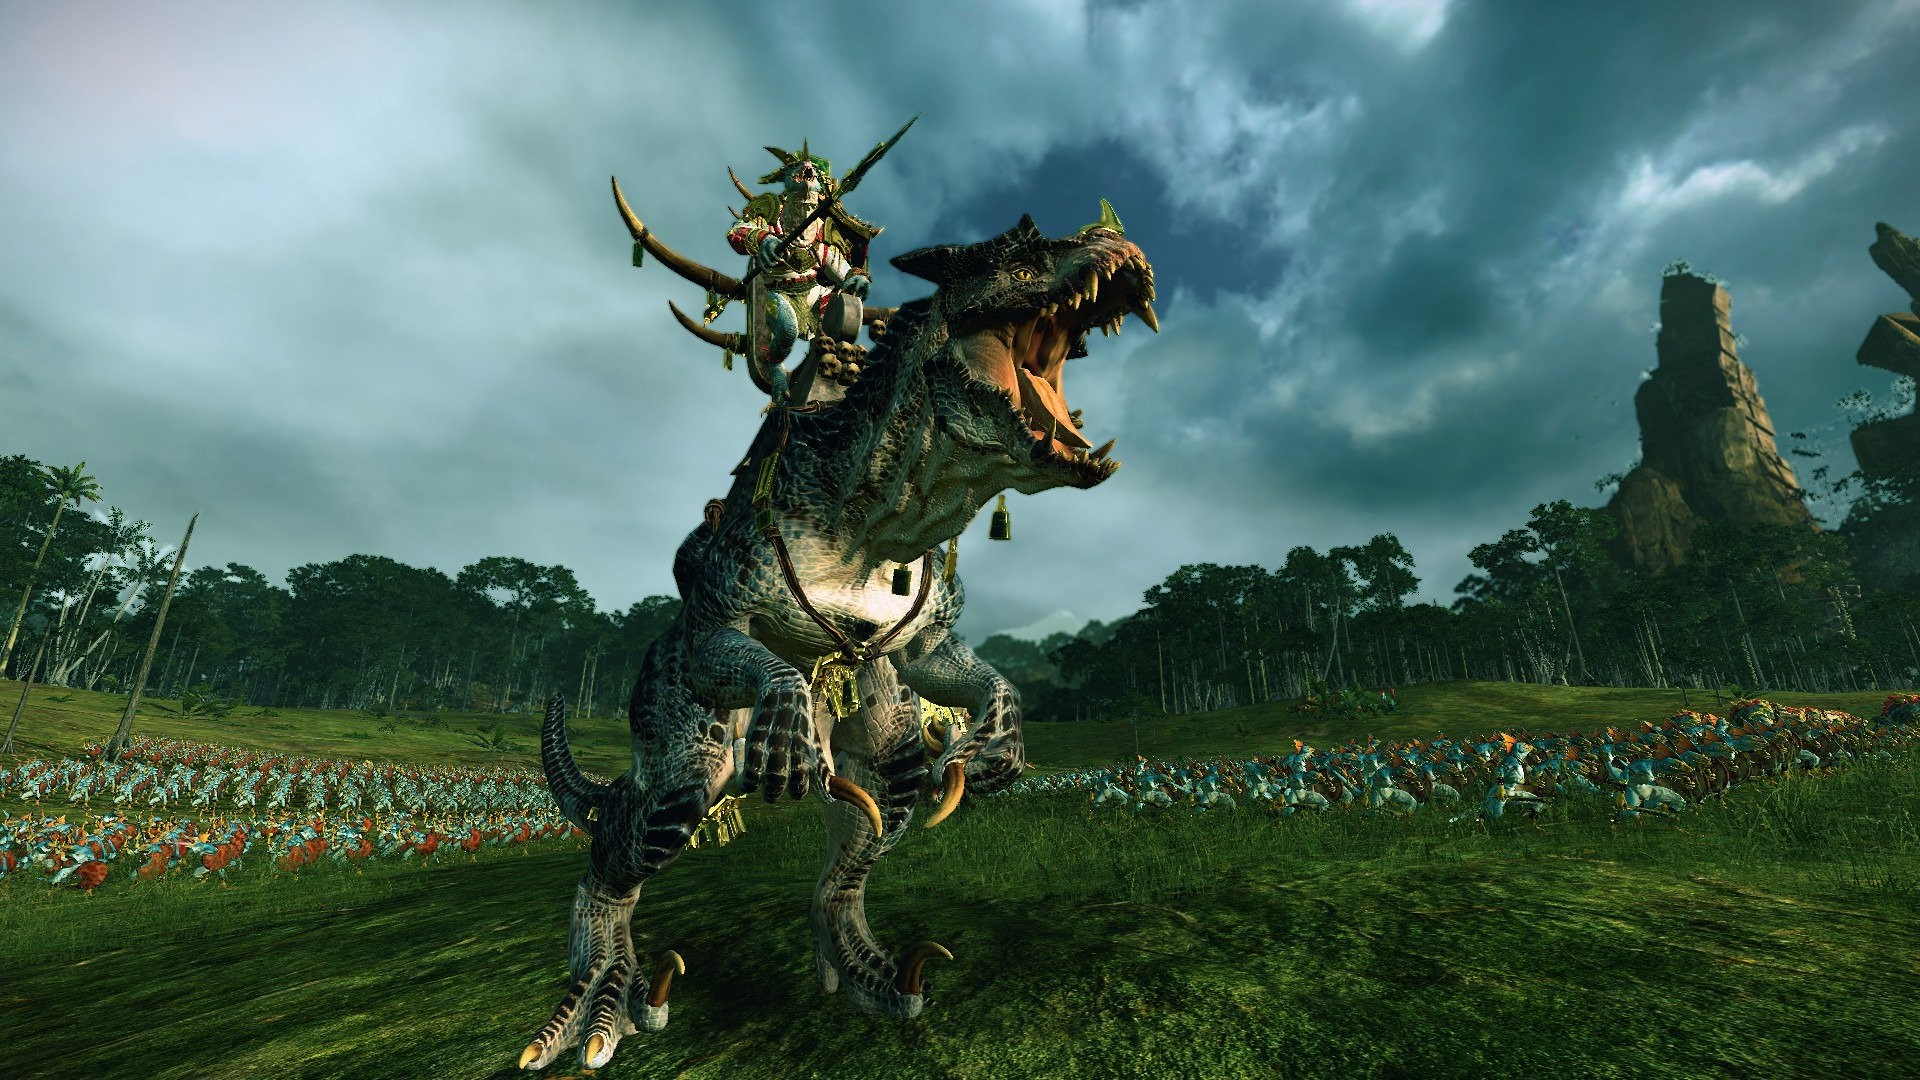 Total War Warhammer 2 Wallpaper: Total War Warhammer II Wallpapers (84+ Images